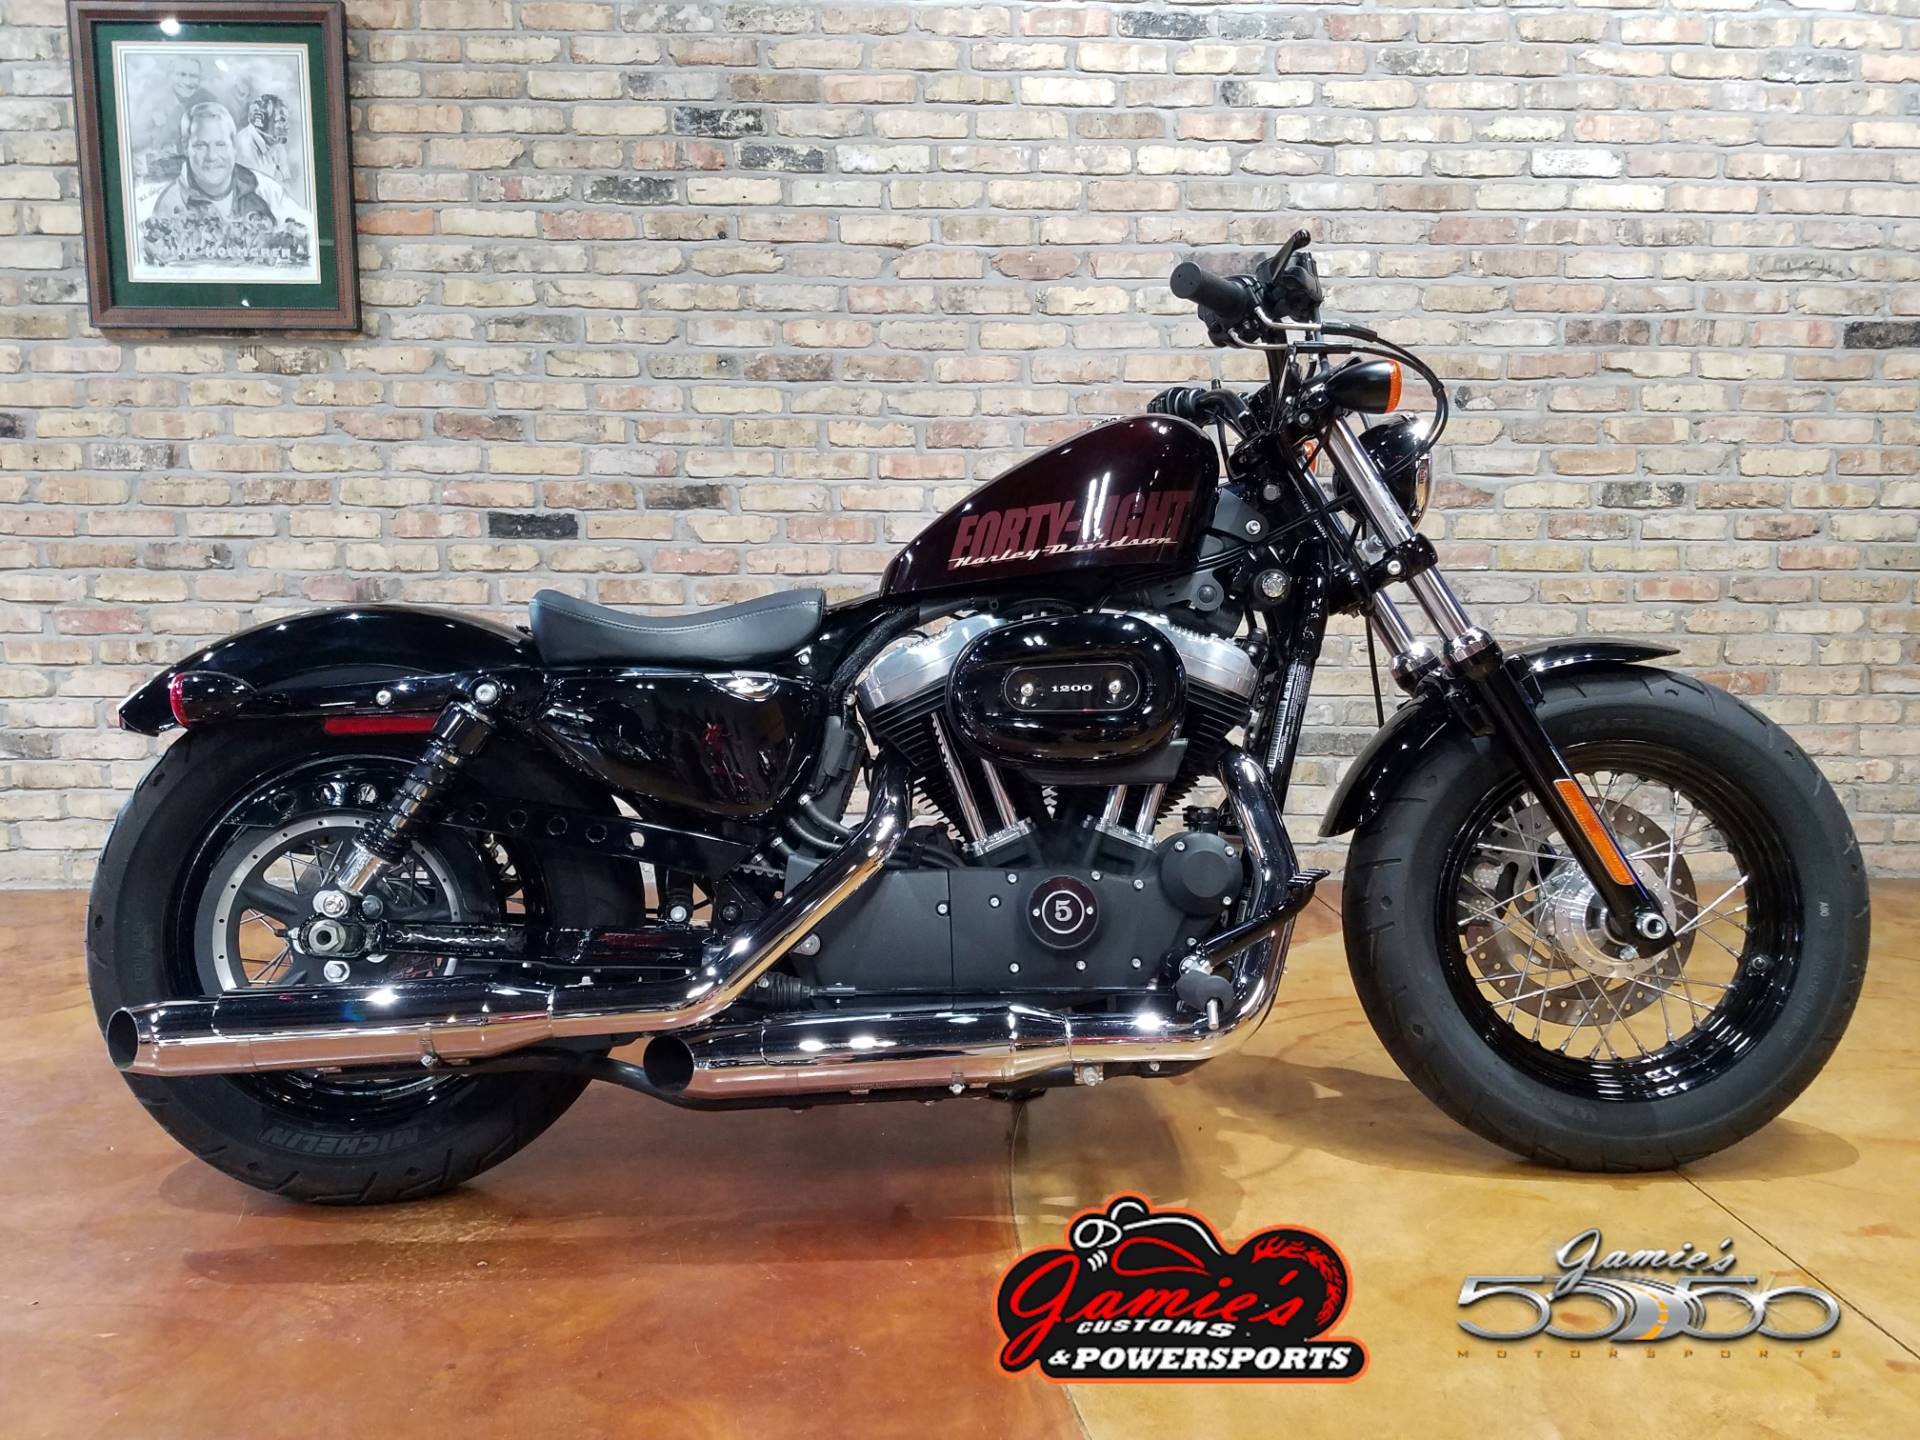 Used 2014 Harley Davidson Sportster Forty Eight Motorcycles In Big Bend Wi 4254j Blackened Cayenne Sunglo